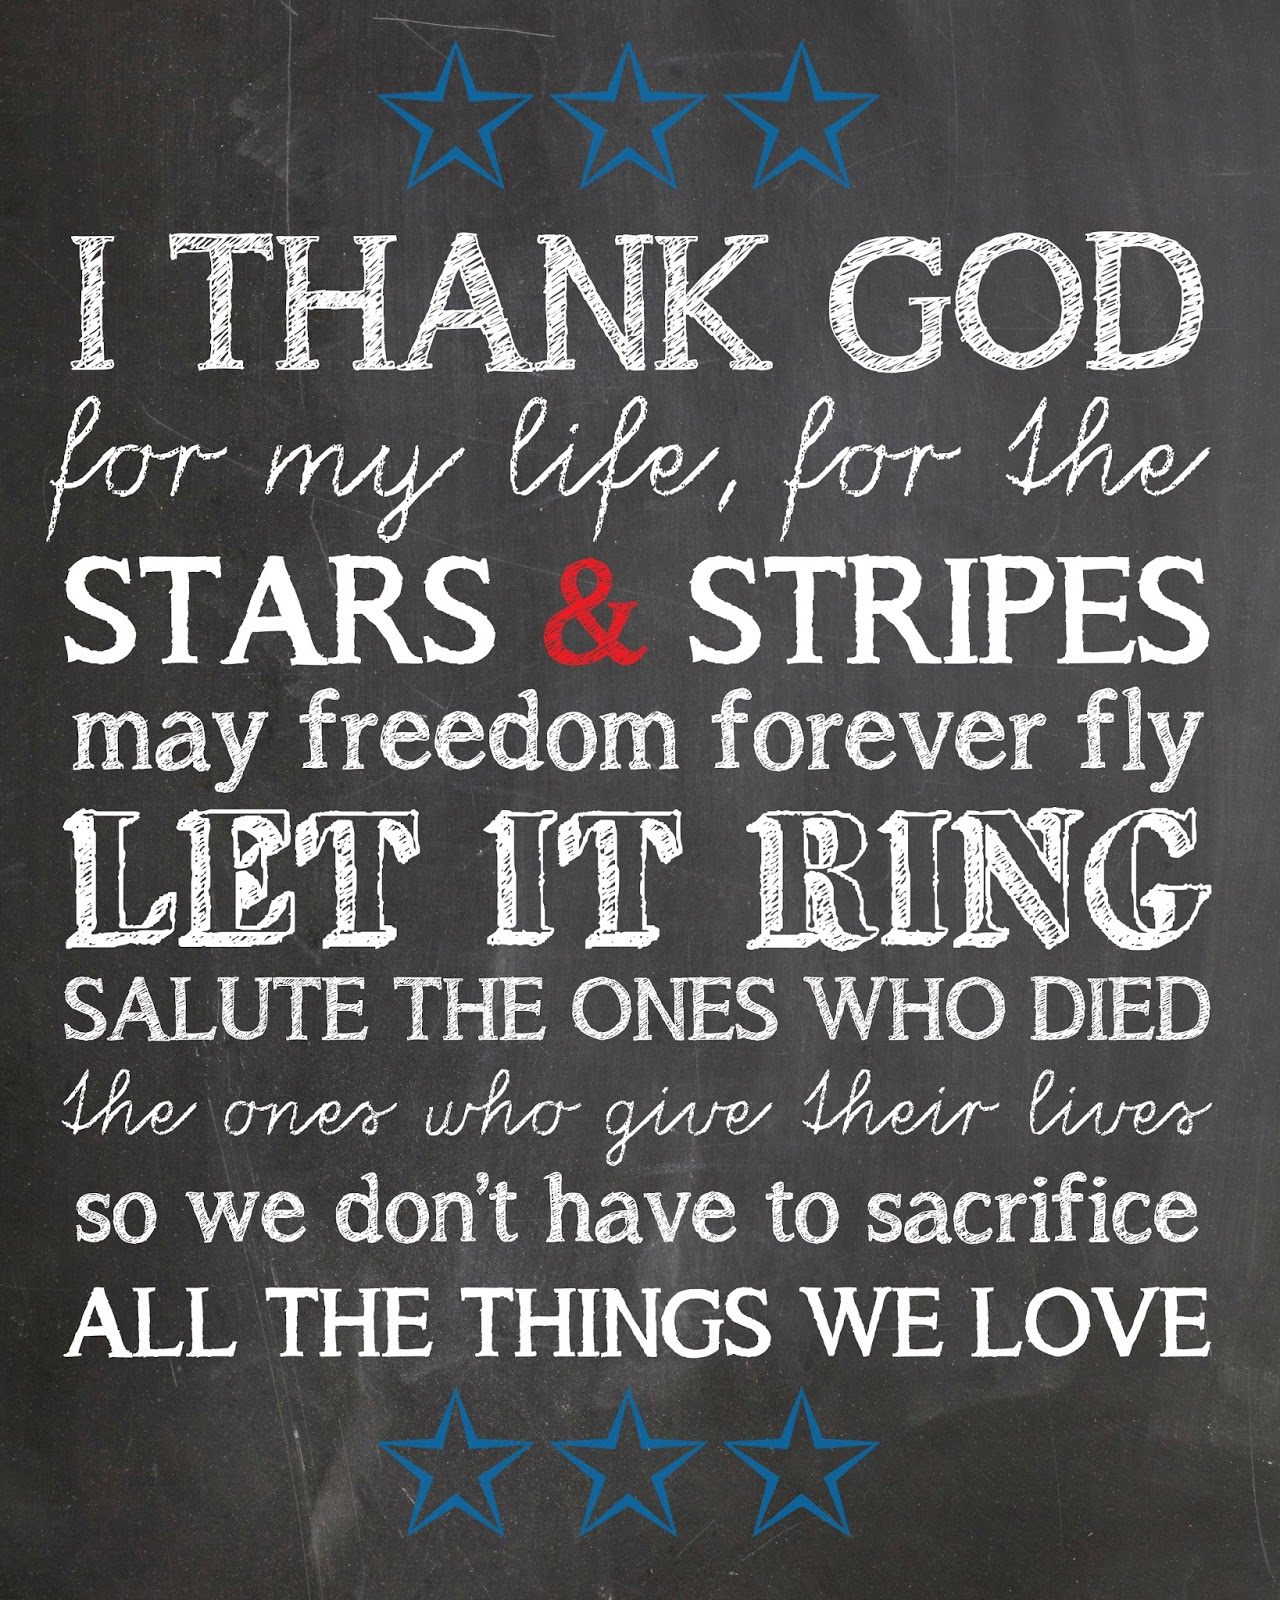 fourth of july military quotes quotesgram. Black Bedroom Furniture Sets. Home Design Ideas